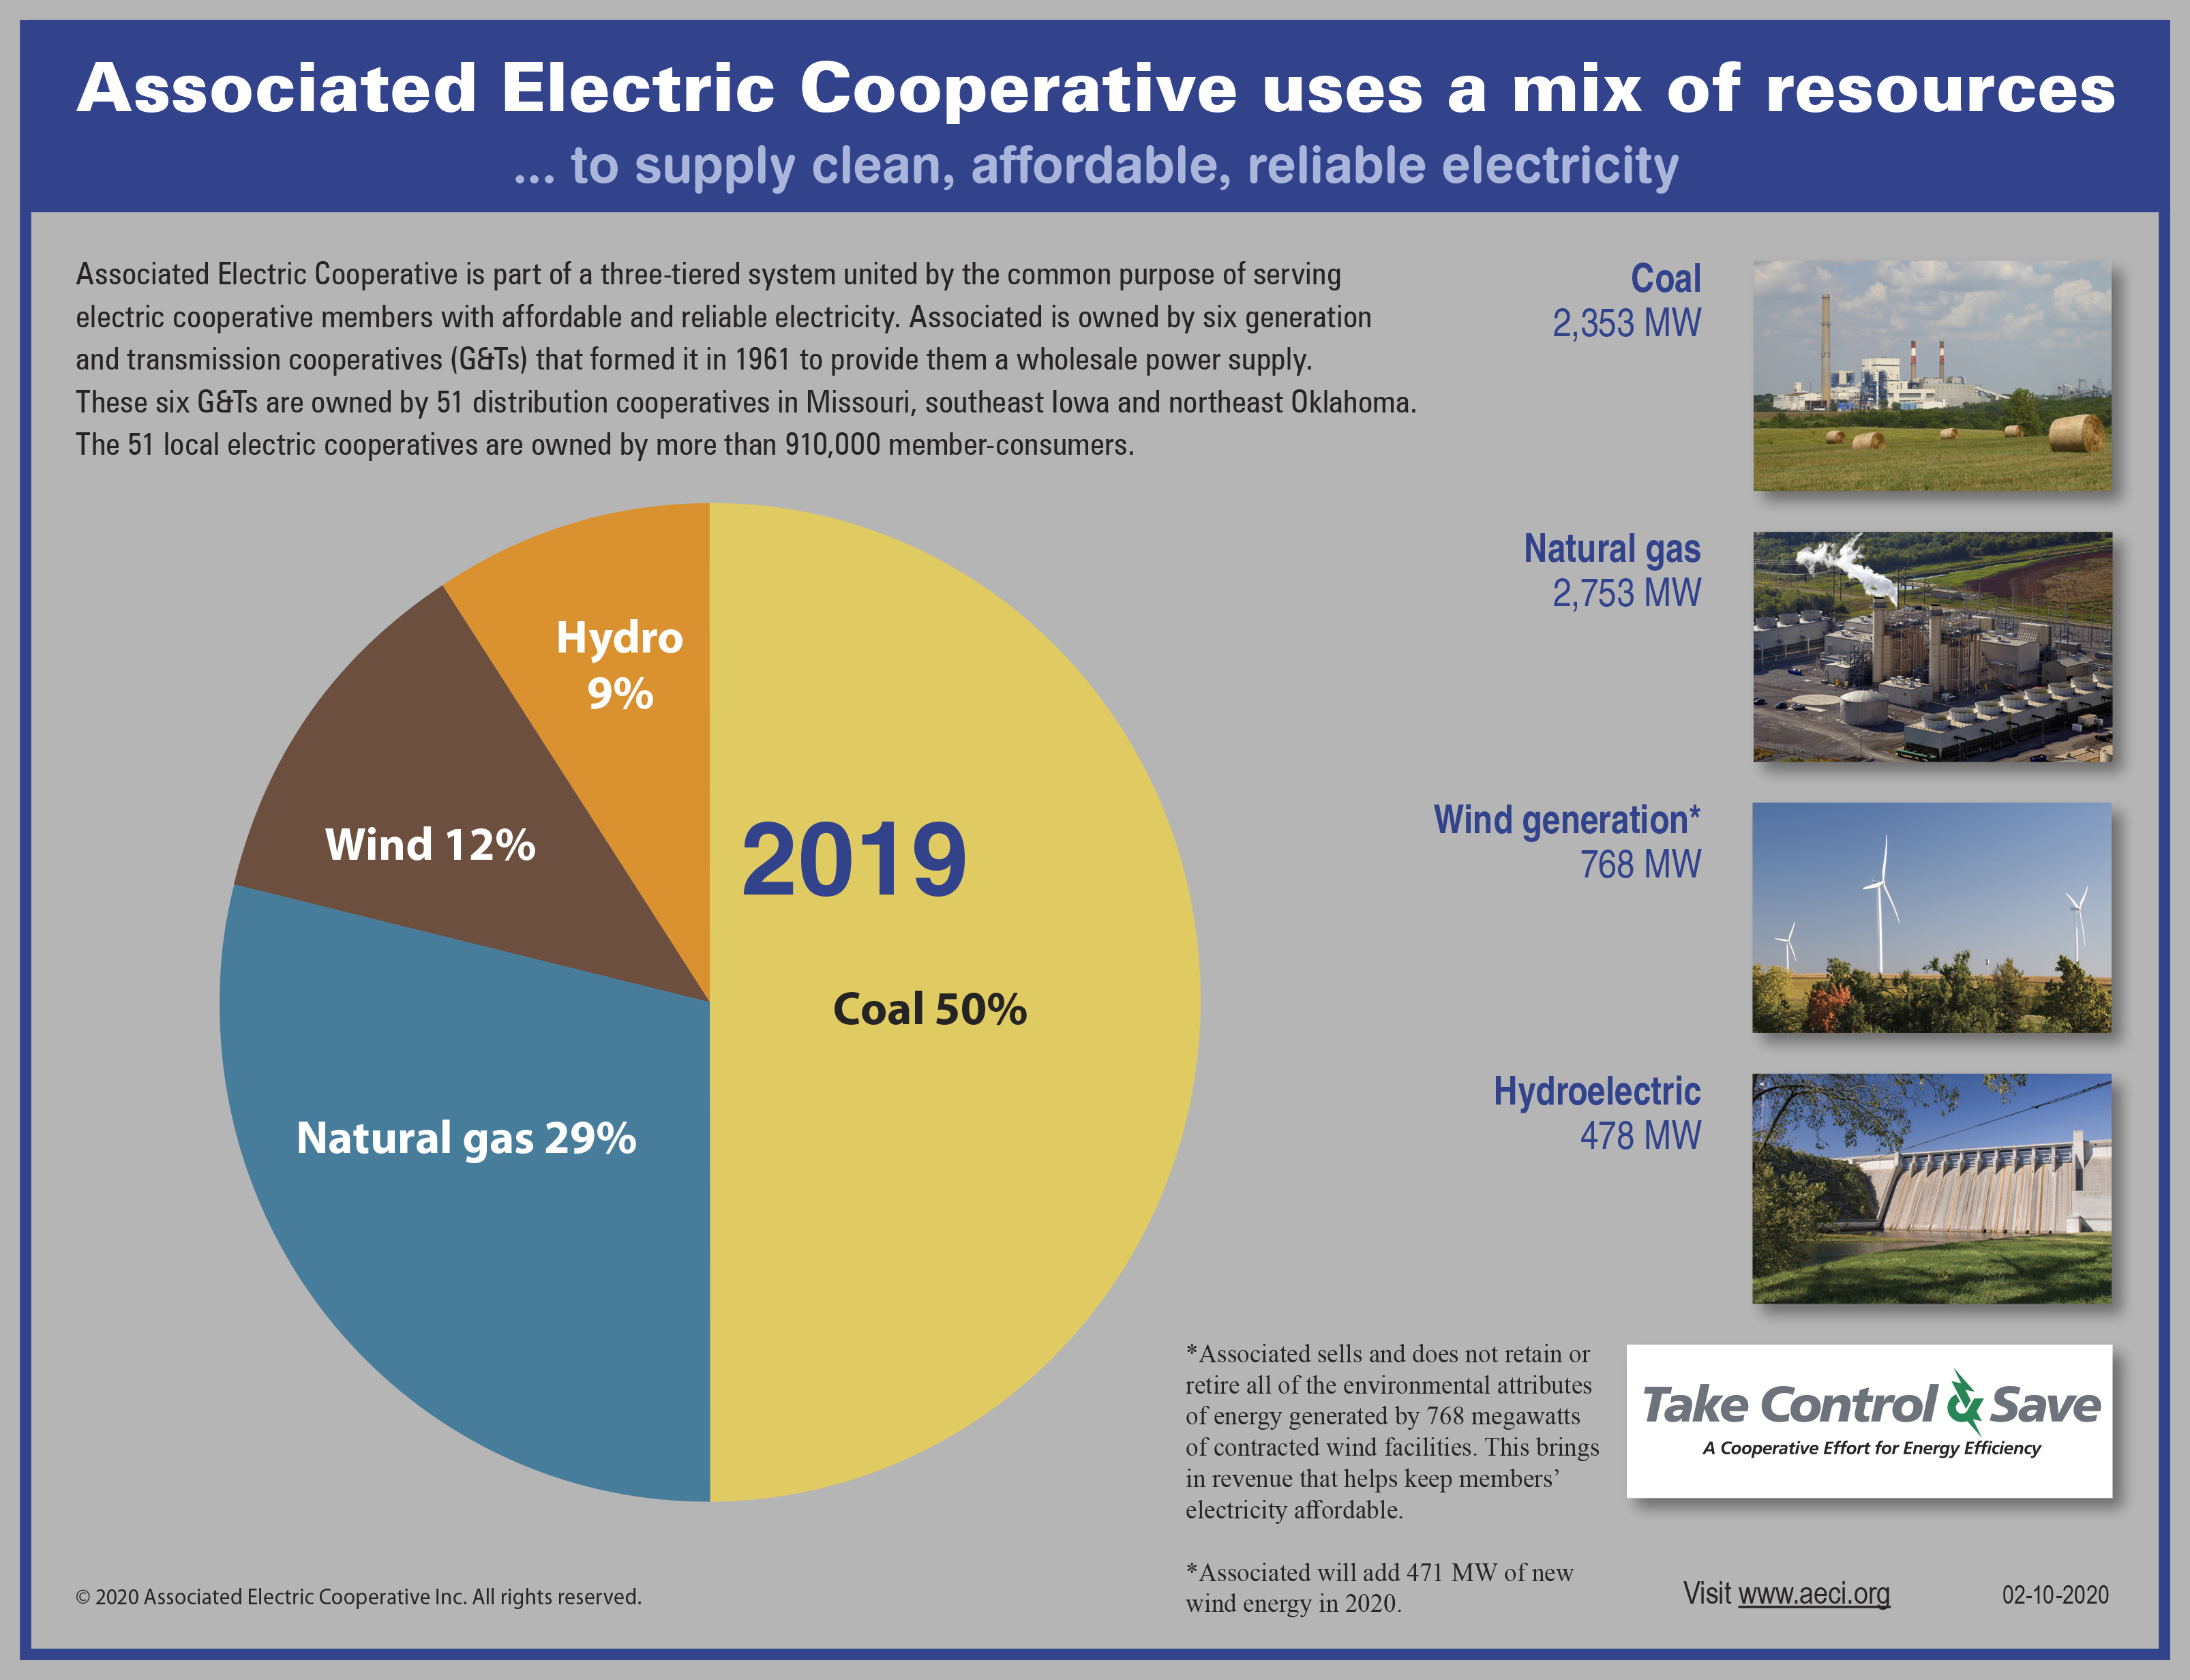 2019 Associated Electric Cooperative resource mix